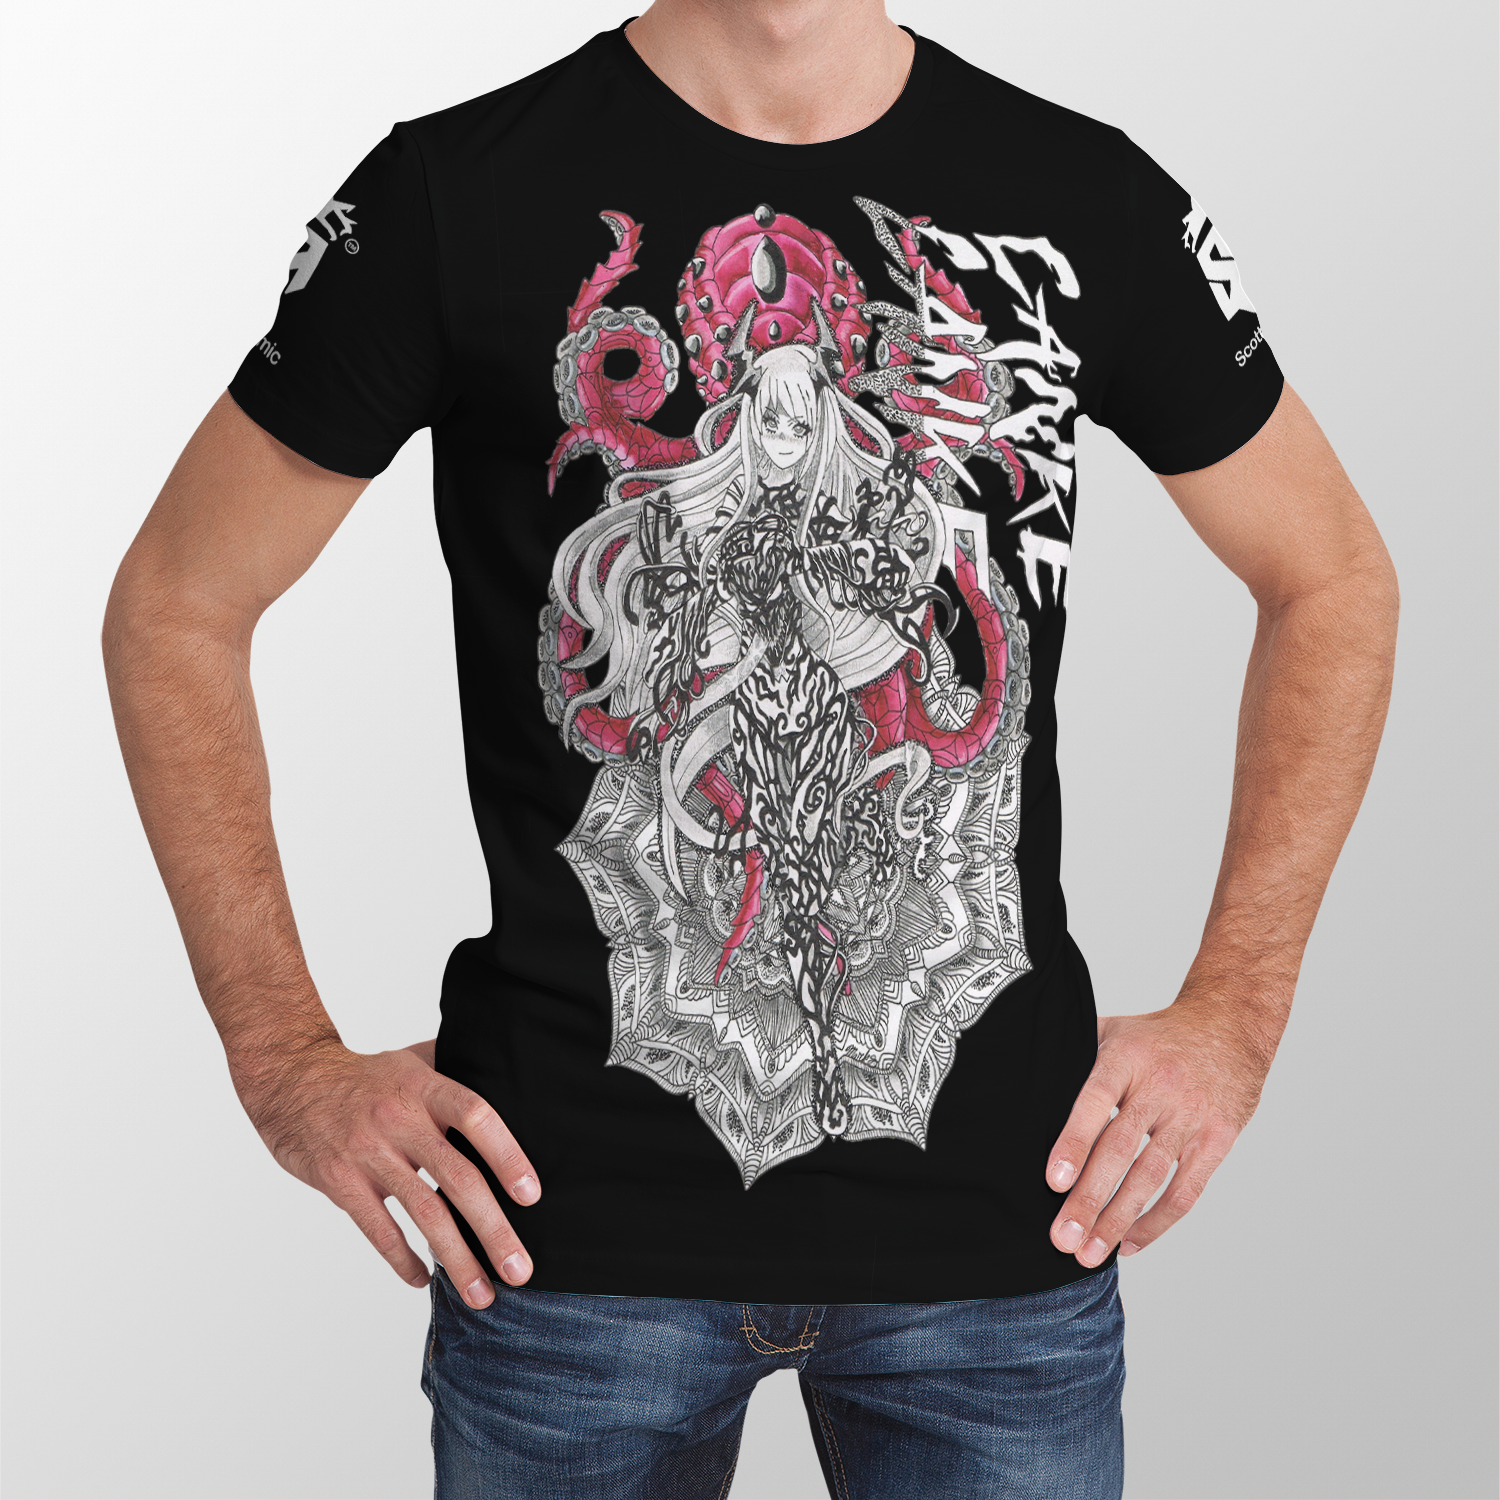 Lanke Venom Anime All Over Print Unisex Shirt